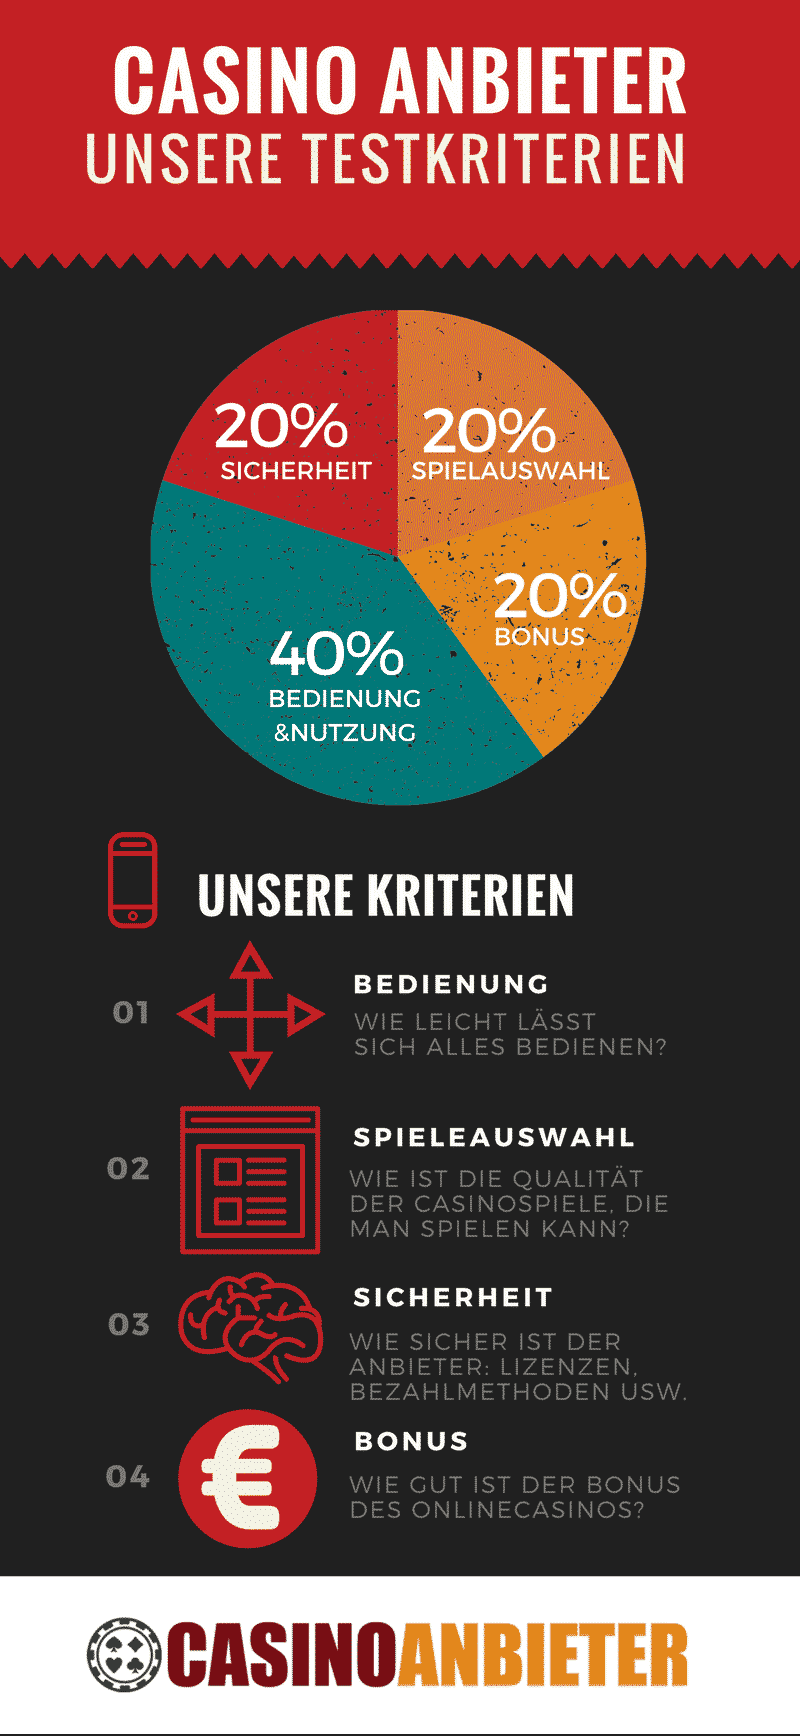 Casinoanbieter Infografik